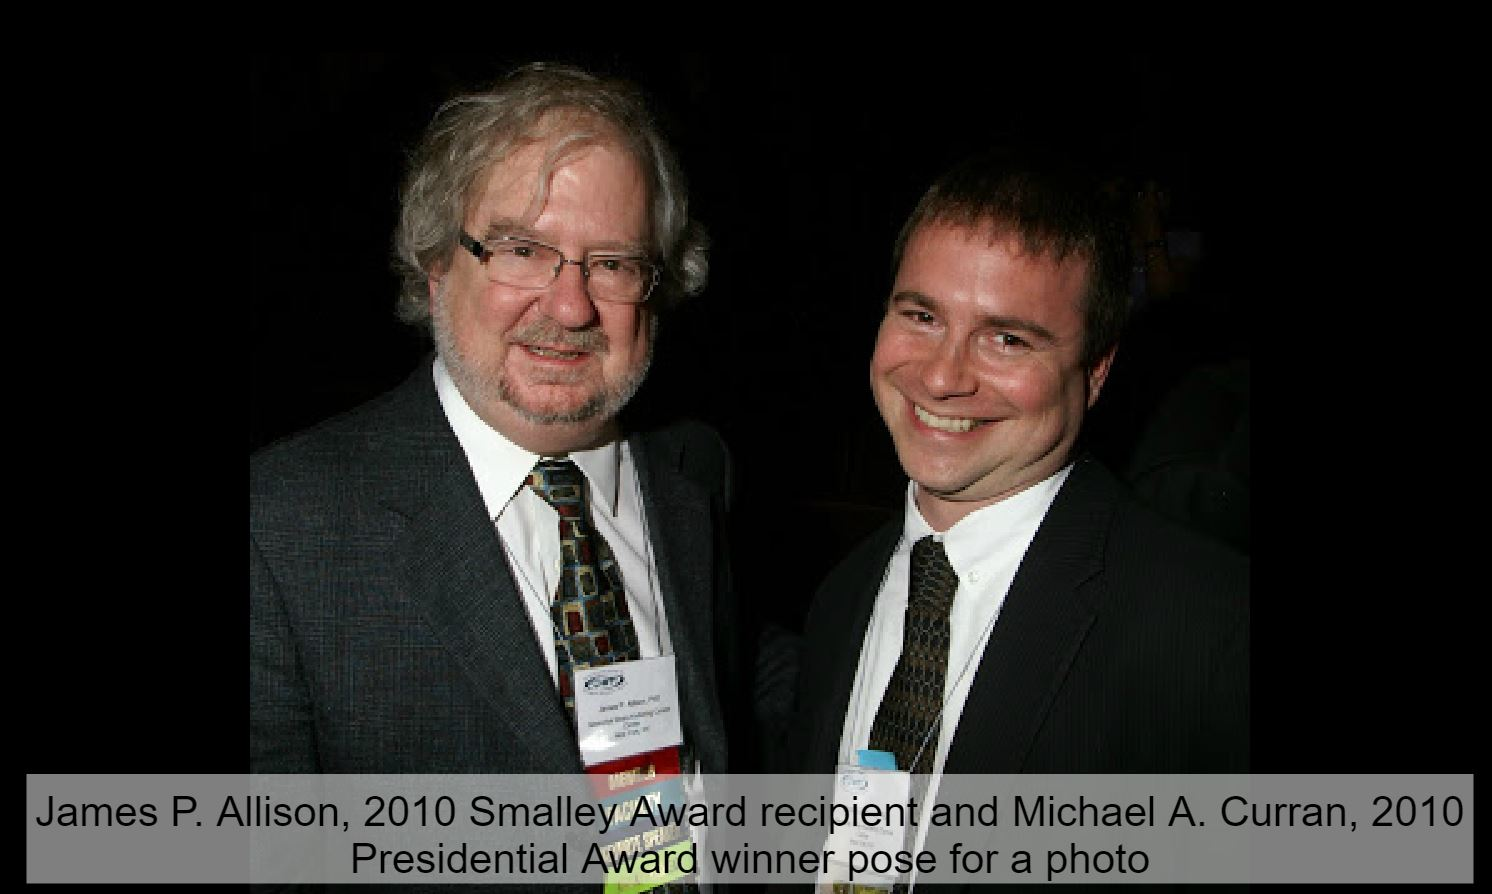 Two male scientists who are award-winning cancer immunotherapy experts.